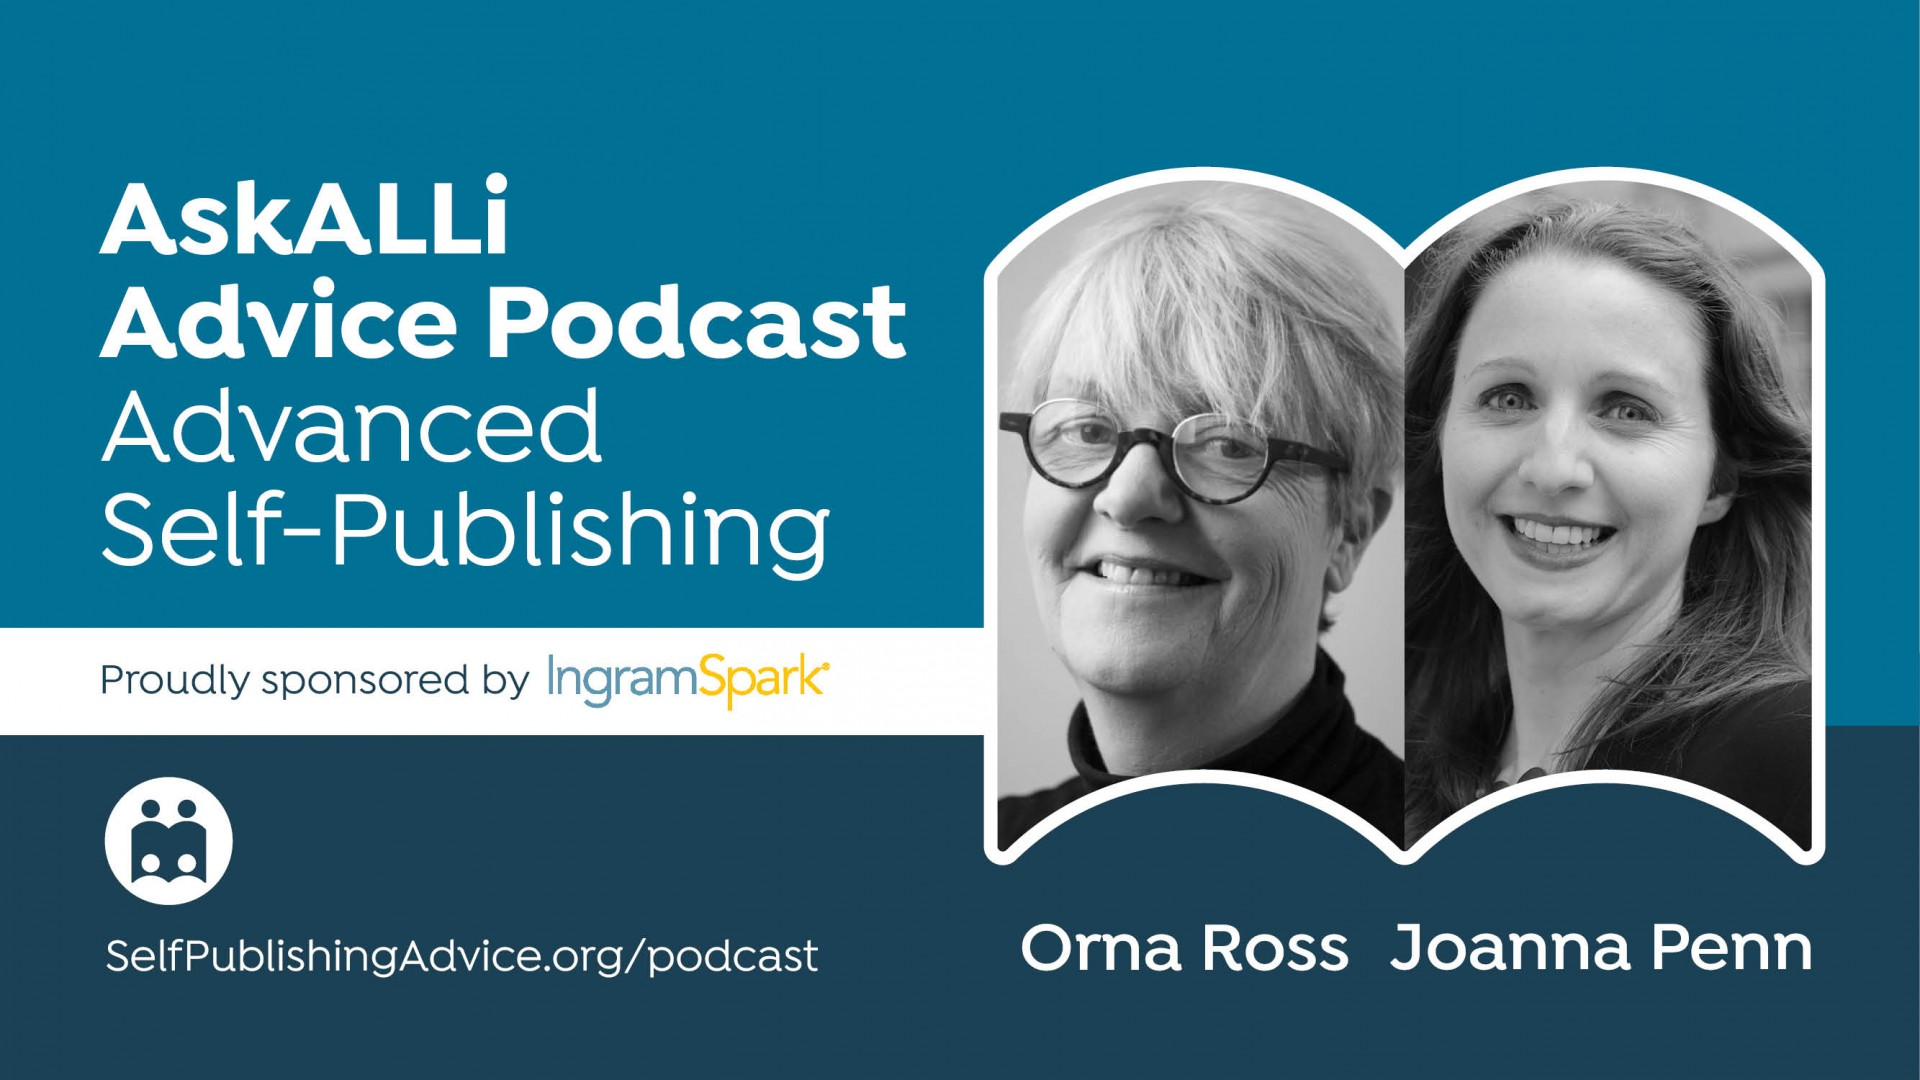 PODCAST: Top 10 Myths About Indie Authors And Self-Publishing